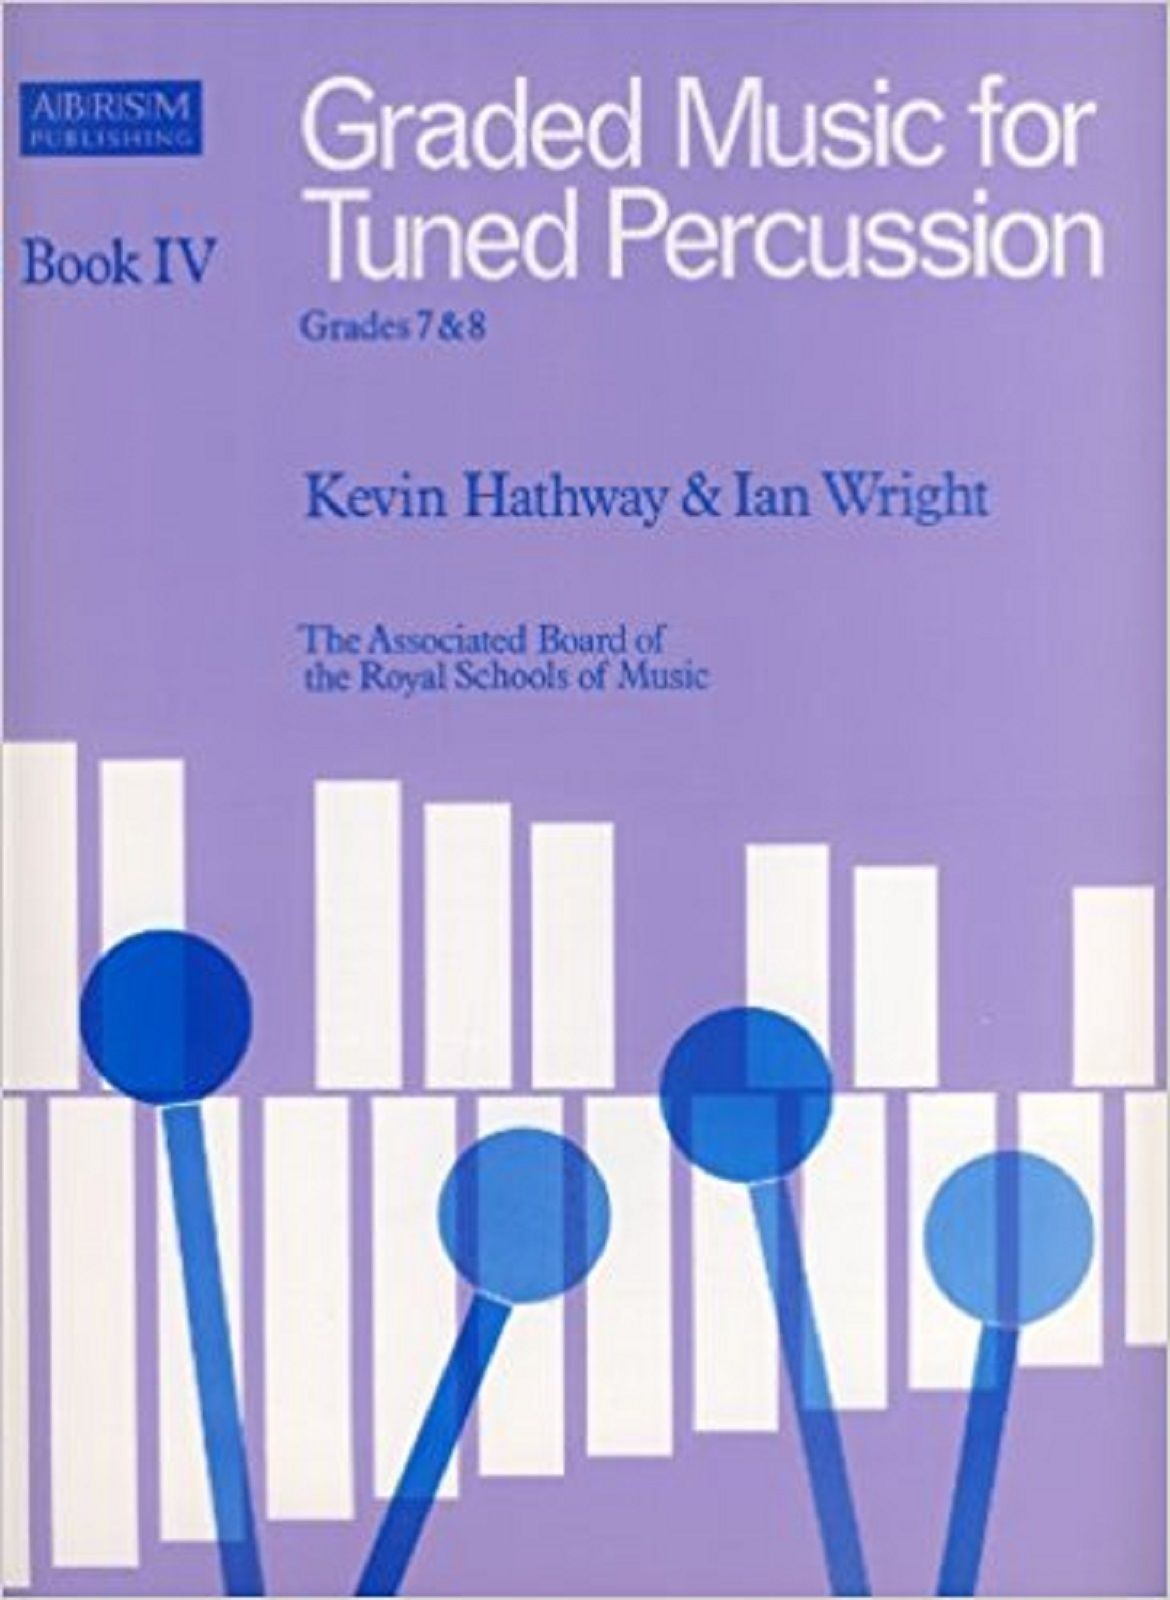 Graded Music For Tuned Percussion Book IV 4 Grades 7 & 8 ABRSM  S134